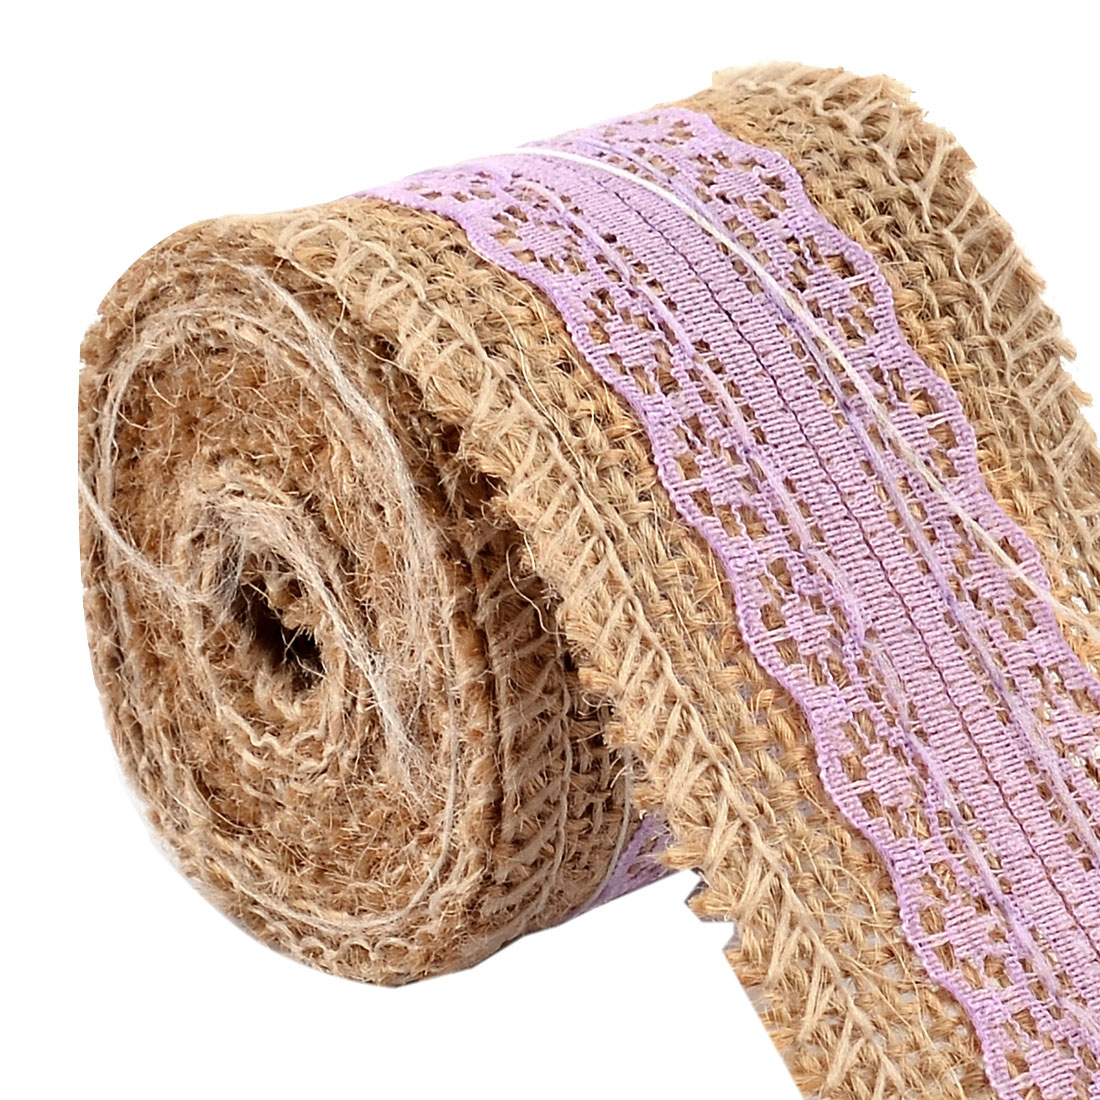 Wedding Burlap Belt Strap String Crafting Lace Trim Edge Ribbon Roll Light Purple 2.2 Yards